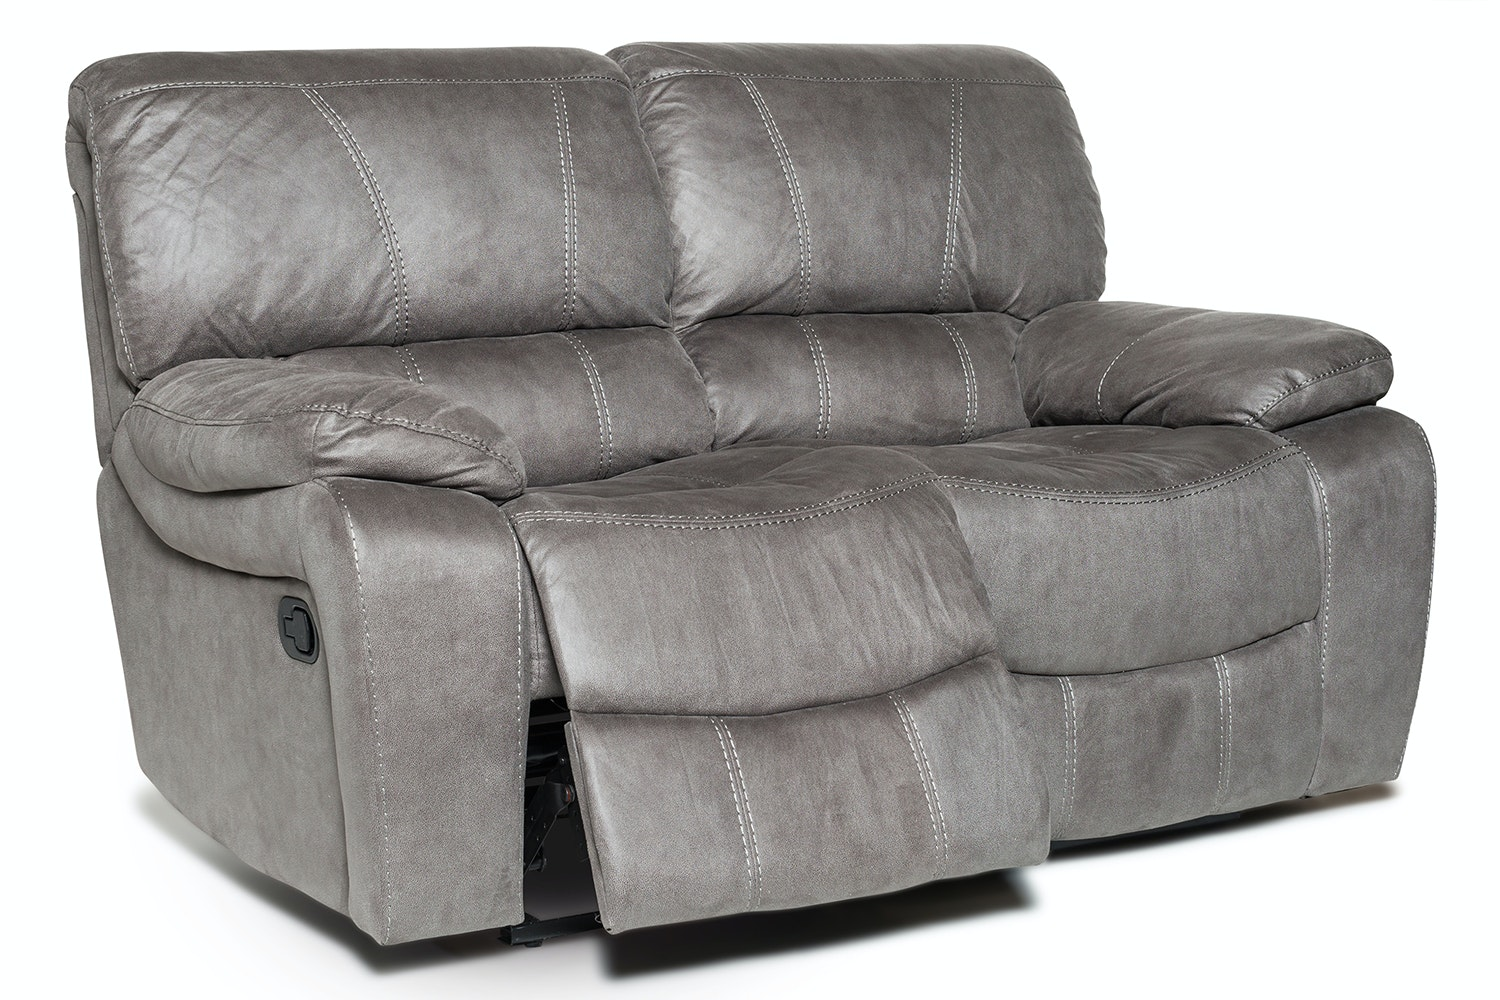 Cooper 2 Seater Recliner Sofa